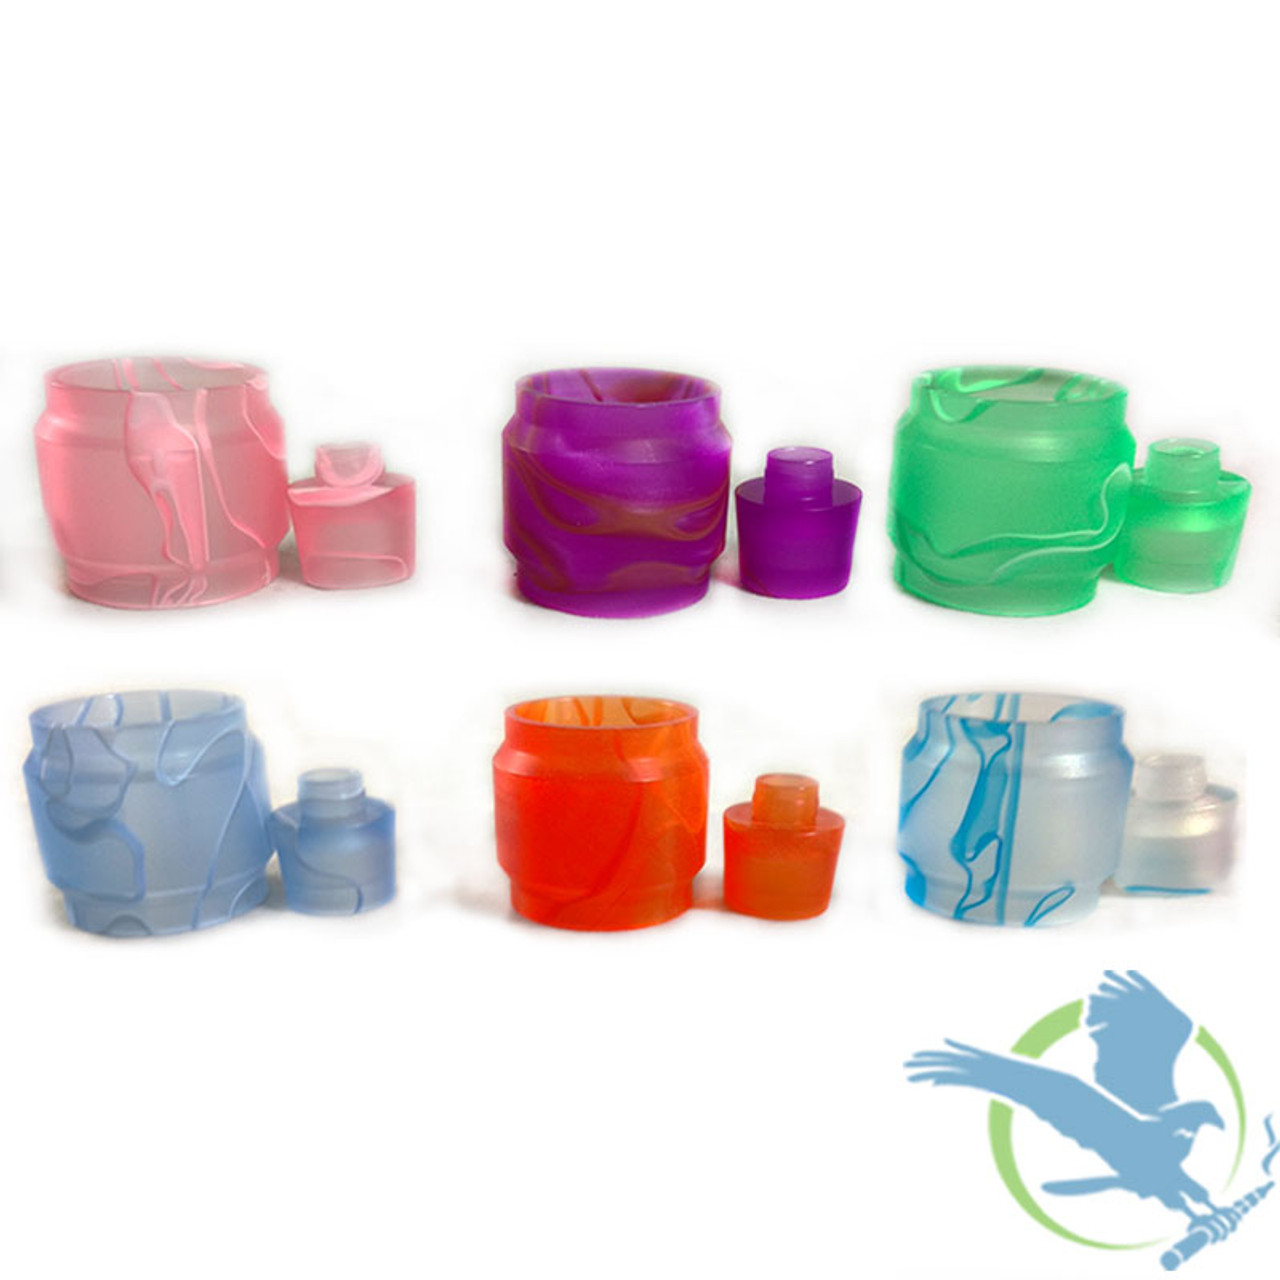 Resin Replacement Tube With Drip Tip - Uwell Valyrian Sub Ohm - Single -  Assorted Colors [AV-UV013] (MSRP $12 00)